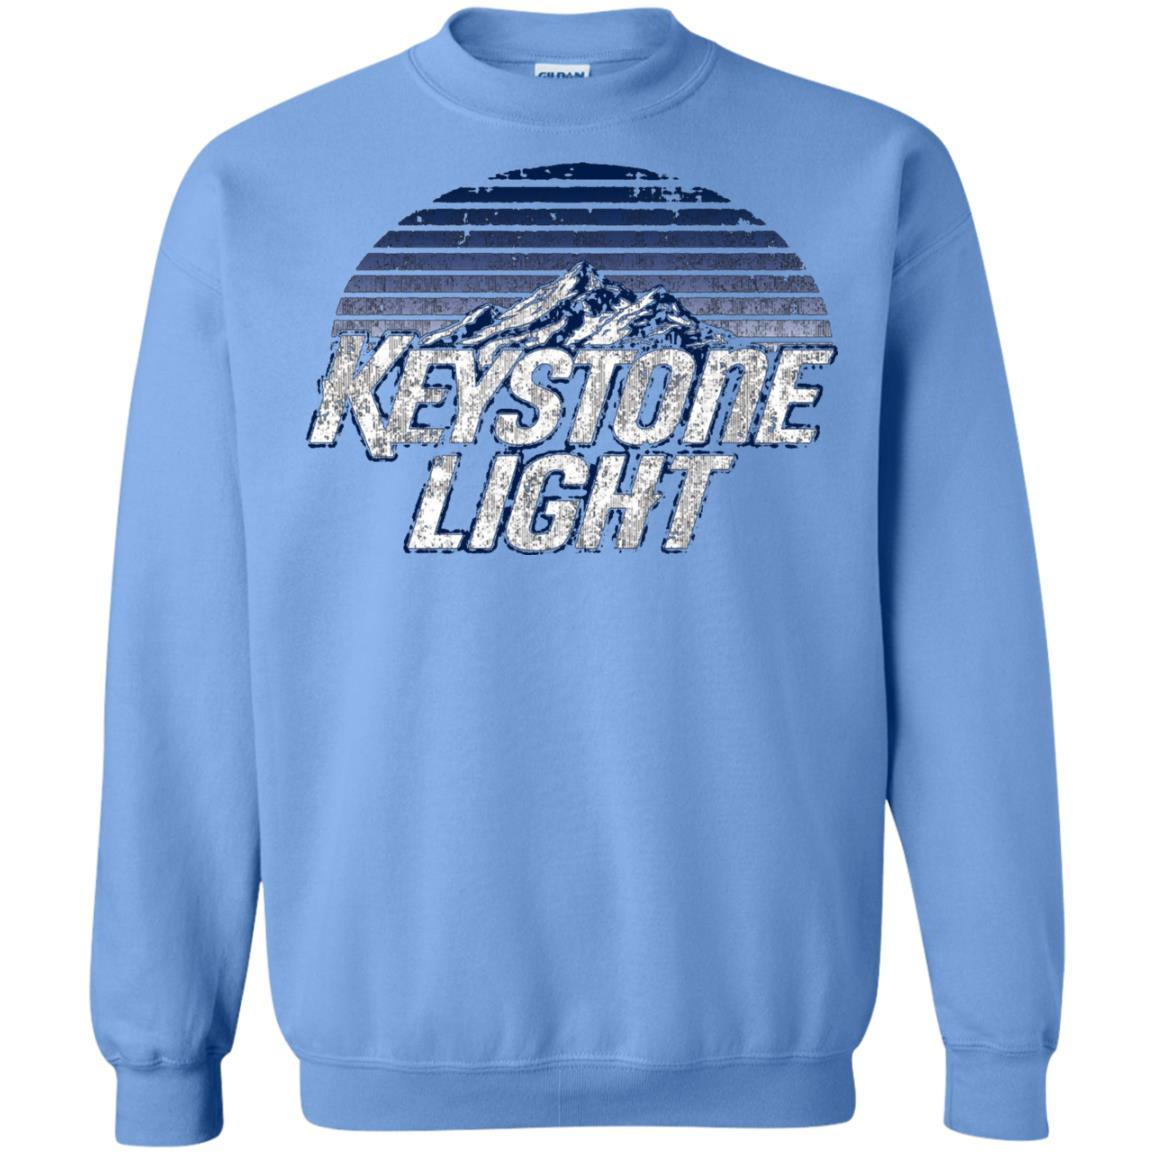 Keystone Light Beer Classic Look - Pullover Sweatshirt Carolina Blue / 5XL